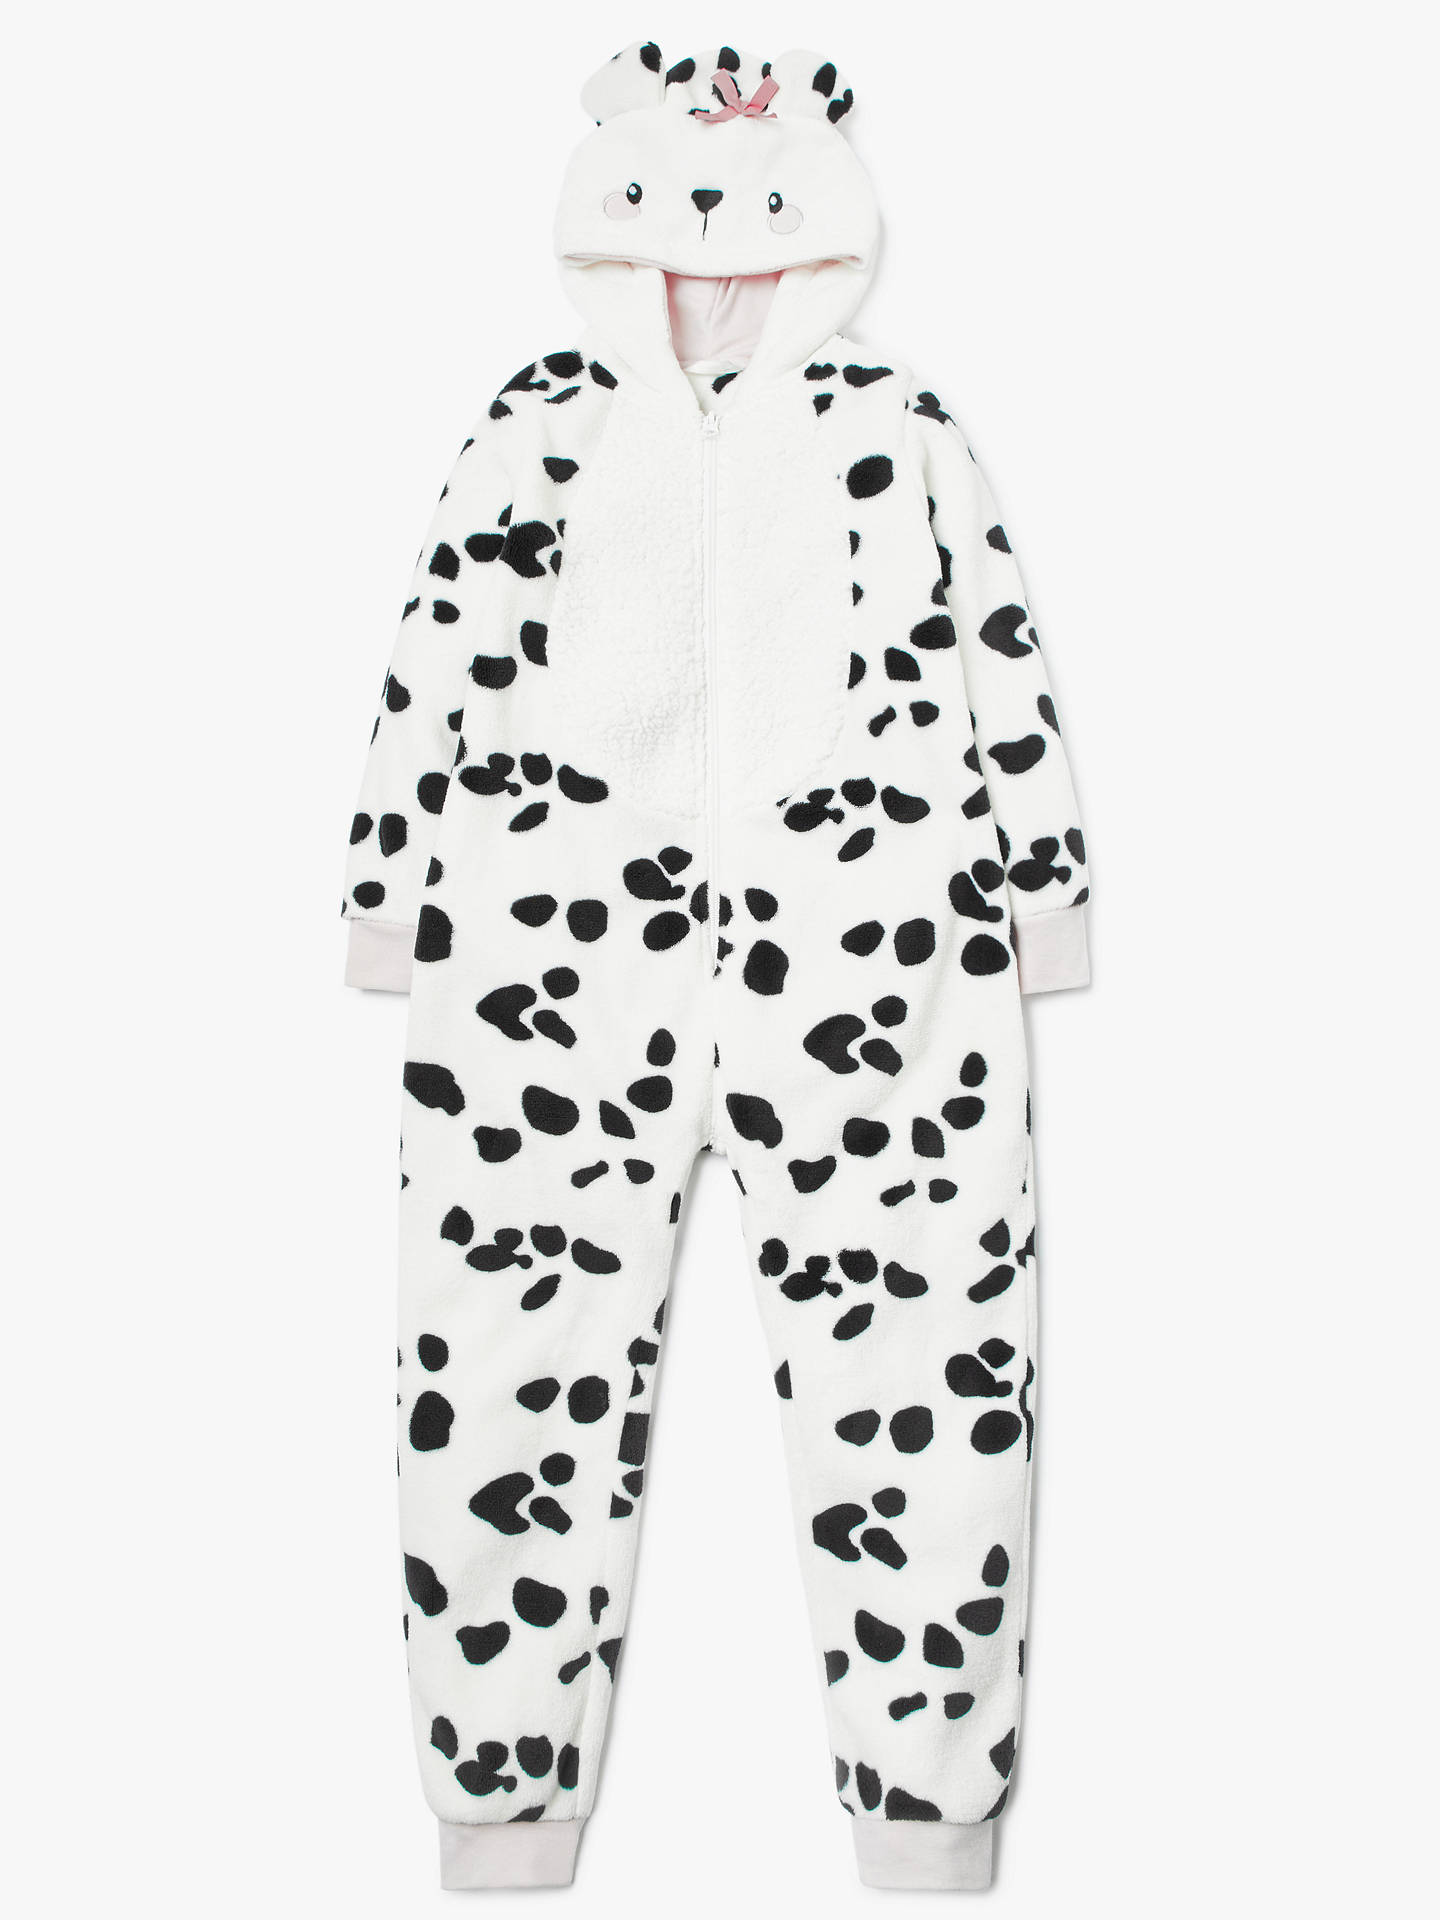 BuyJohn Lewis & Partners Girls' Dalmatian Fleece Onesie, White/Black, 3 years Online at johnlewis.com